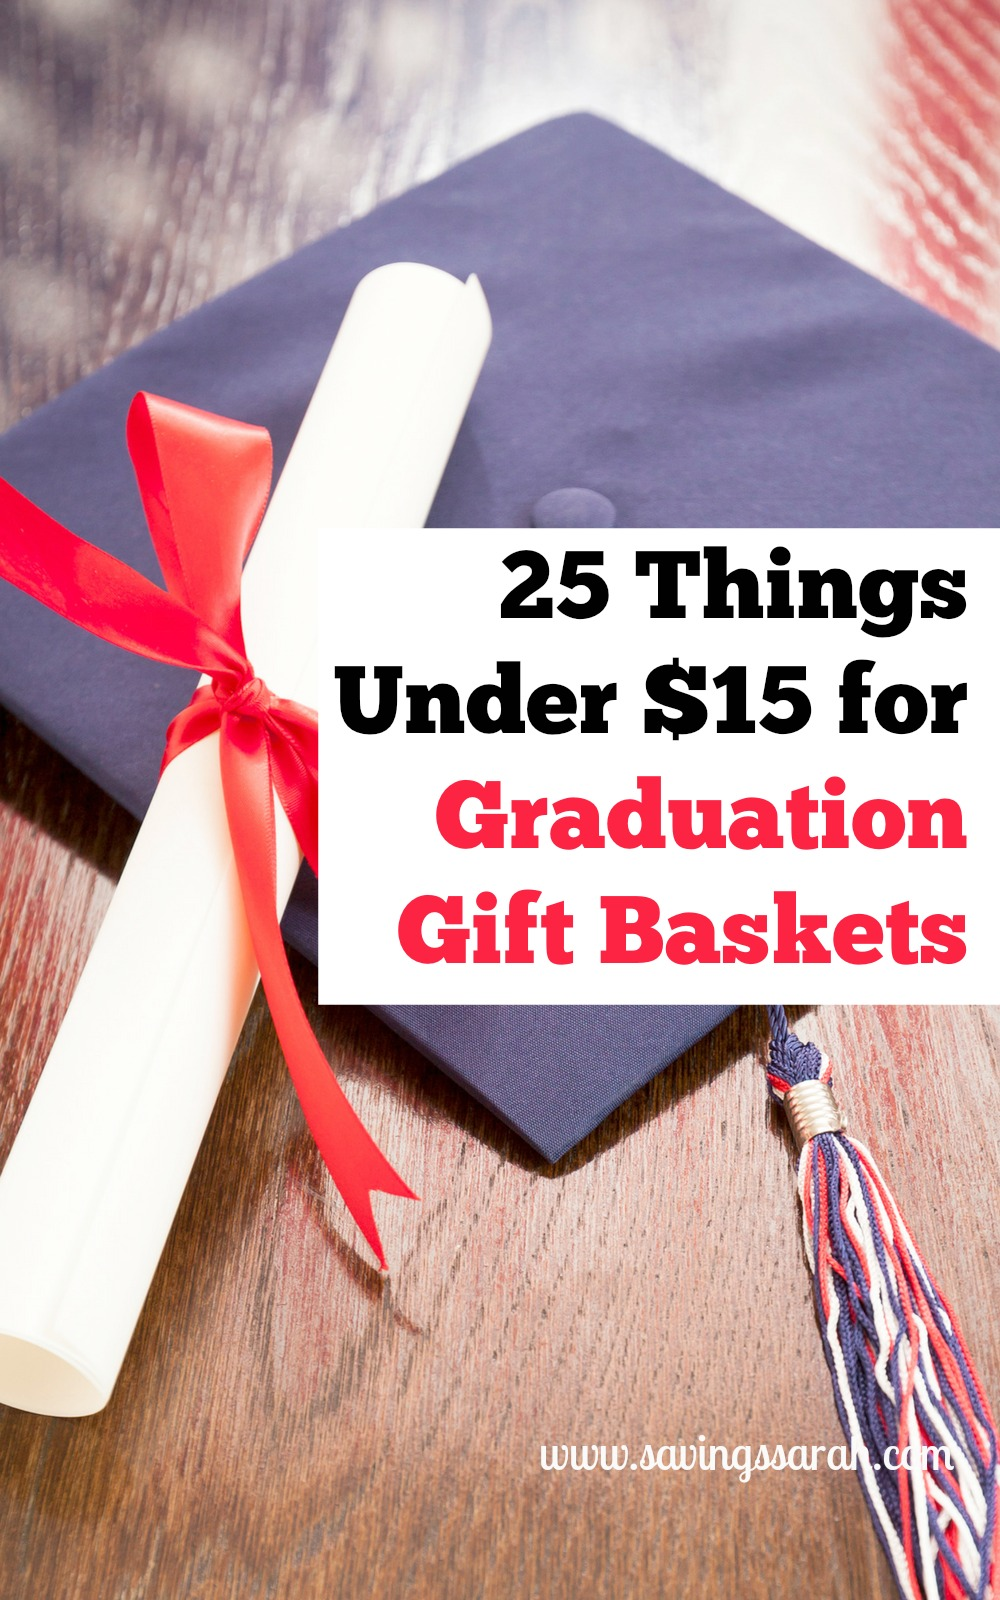 25 things under 15 for graduation gift baskets earning and saving 25 tings under 15 for graduation gift baskets negle Image collections